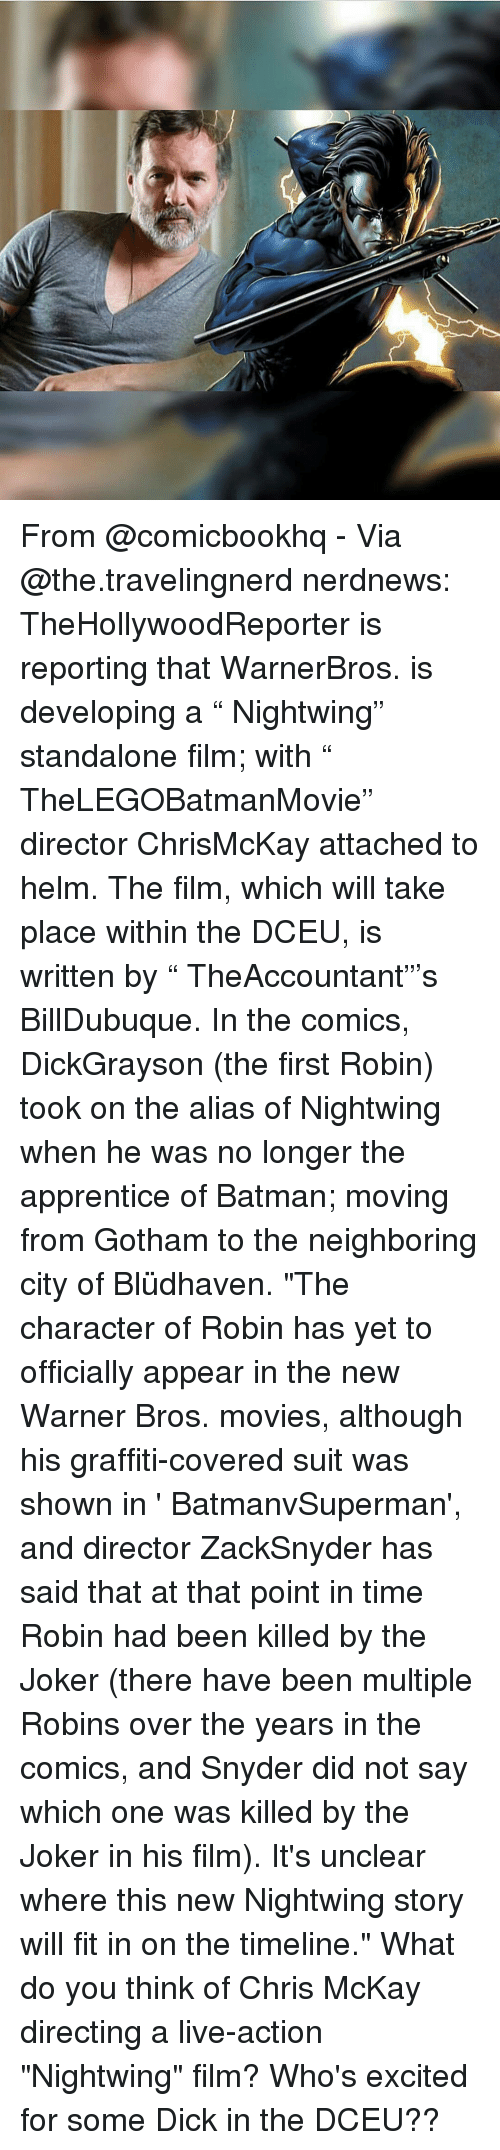 "Batman, Dicks, and Graffiti: From @comicbookhq - Via @the.travelingnerd nerdnews: TheHollywoodReporter is reporting that WarnerBros. is developing a "" Nightwing"" standalone film; with "" TheLEGOBatmanMovie"" director ChrisMcKay attached to helm. The film, which will take place within the DCEU, is written by "" TheAccountant""'s BillDubuque. In the comics, DickGrayson (the first Robin) took on the alias of Nightwing when he was no longer the apprentice of Batman; moving from Gotham to the neighboring city of Blüdhaven. ""The character of Robin has yet to officially appear in the new Warner Bros. movies, although his graffiti-covered suit was shown in ' BatmanvSuperman', and director ZackSnyder has said that at that point in time Robin had been killed by the Joker (there have been multiple Robins over the years in the comics, and Snyder did not say which one was killed by the Joker in his film). It's unclear where this new Nightwing story will fit in on the timeline."" What do you think of Chris McKay directing a live-action ""Nightwing"" film? Who's excited for some Dick in the DCEU??"